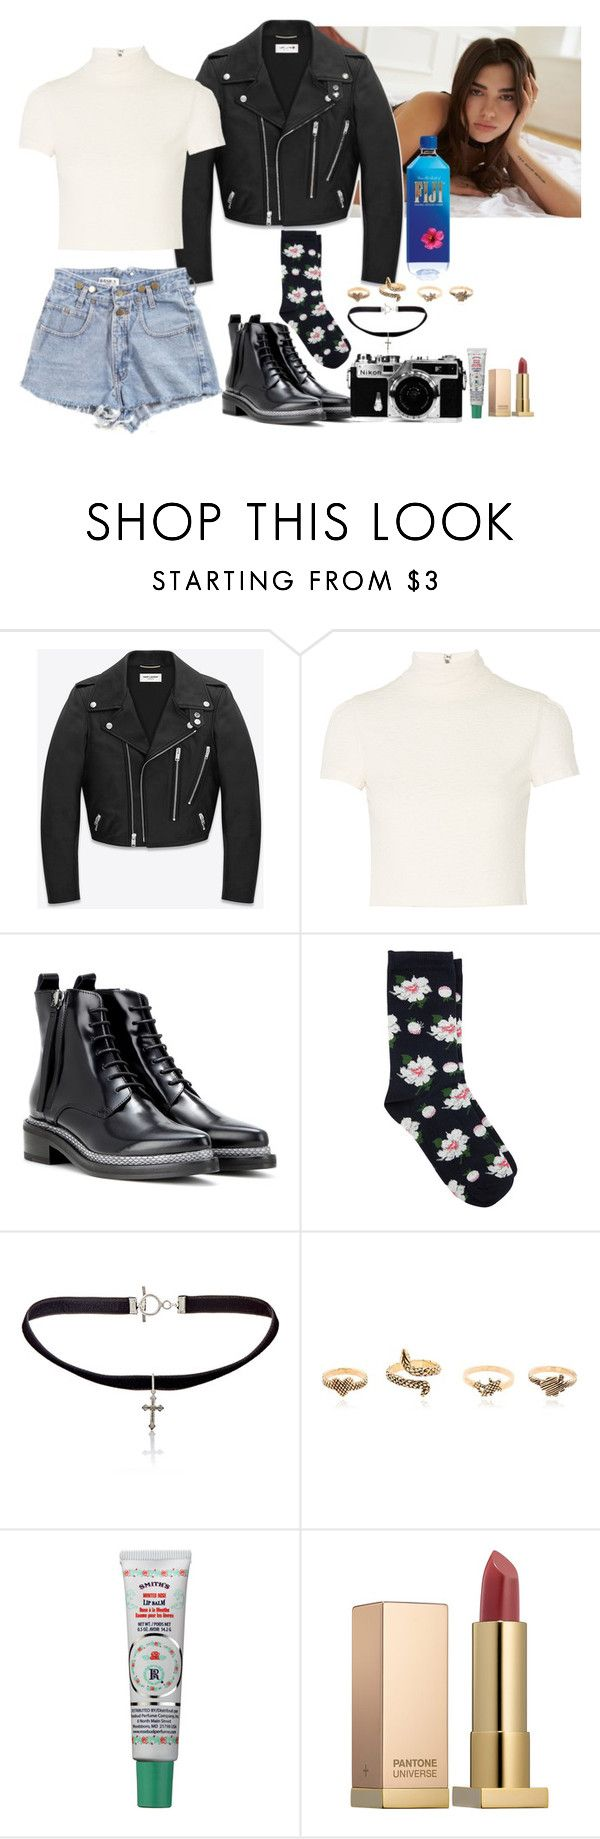 """Dua Lipa Concert 💓"" by imimidoll ❤ liked on Polyvore featuring Yves Saint Laurent, Alice + Olivia, Acne Studios, Oasis, Nikon and Sephora Collection"